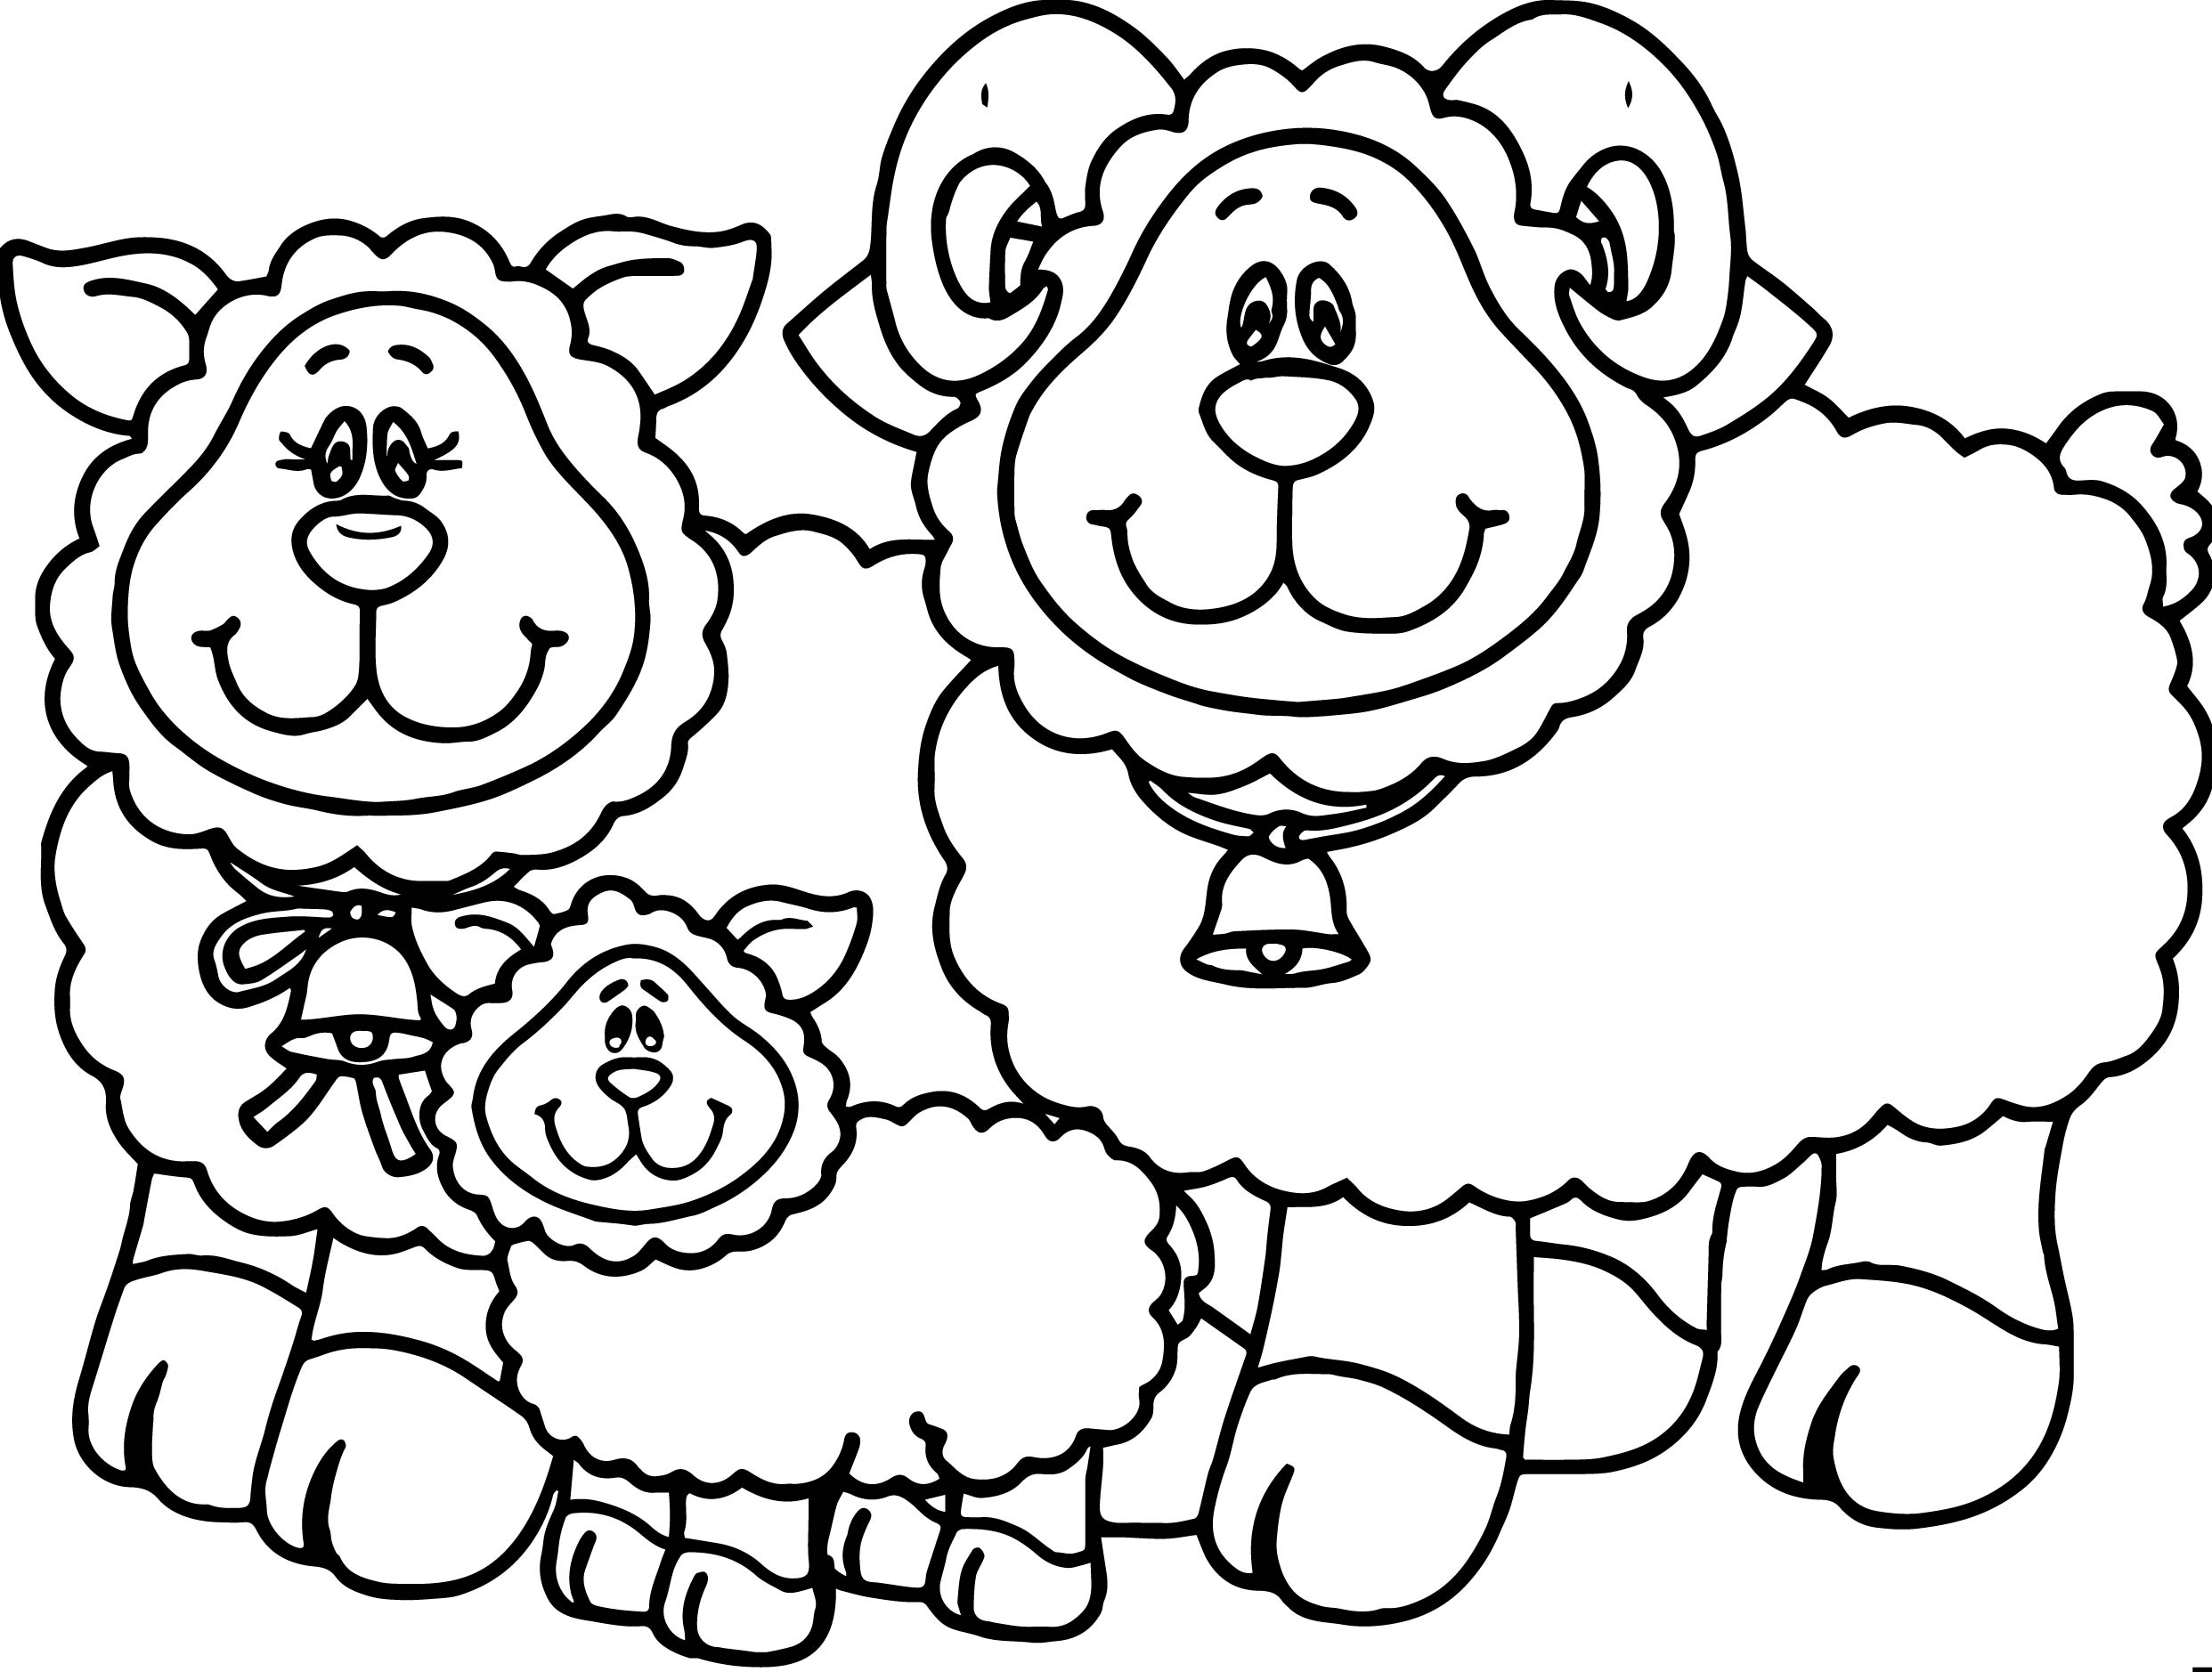 ben carson coloring pages - photo#18